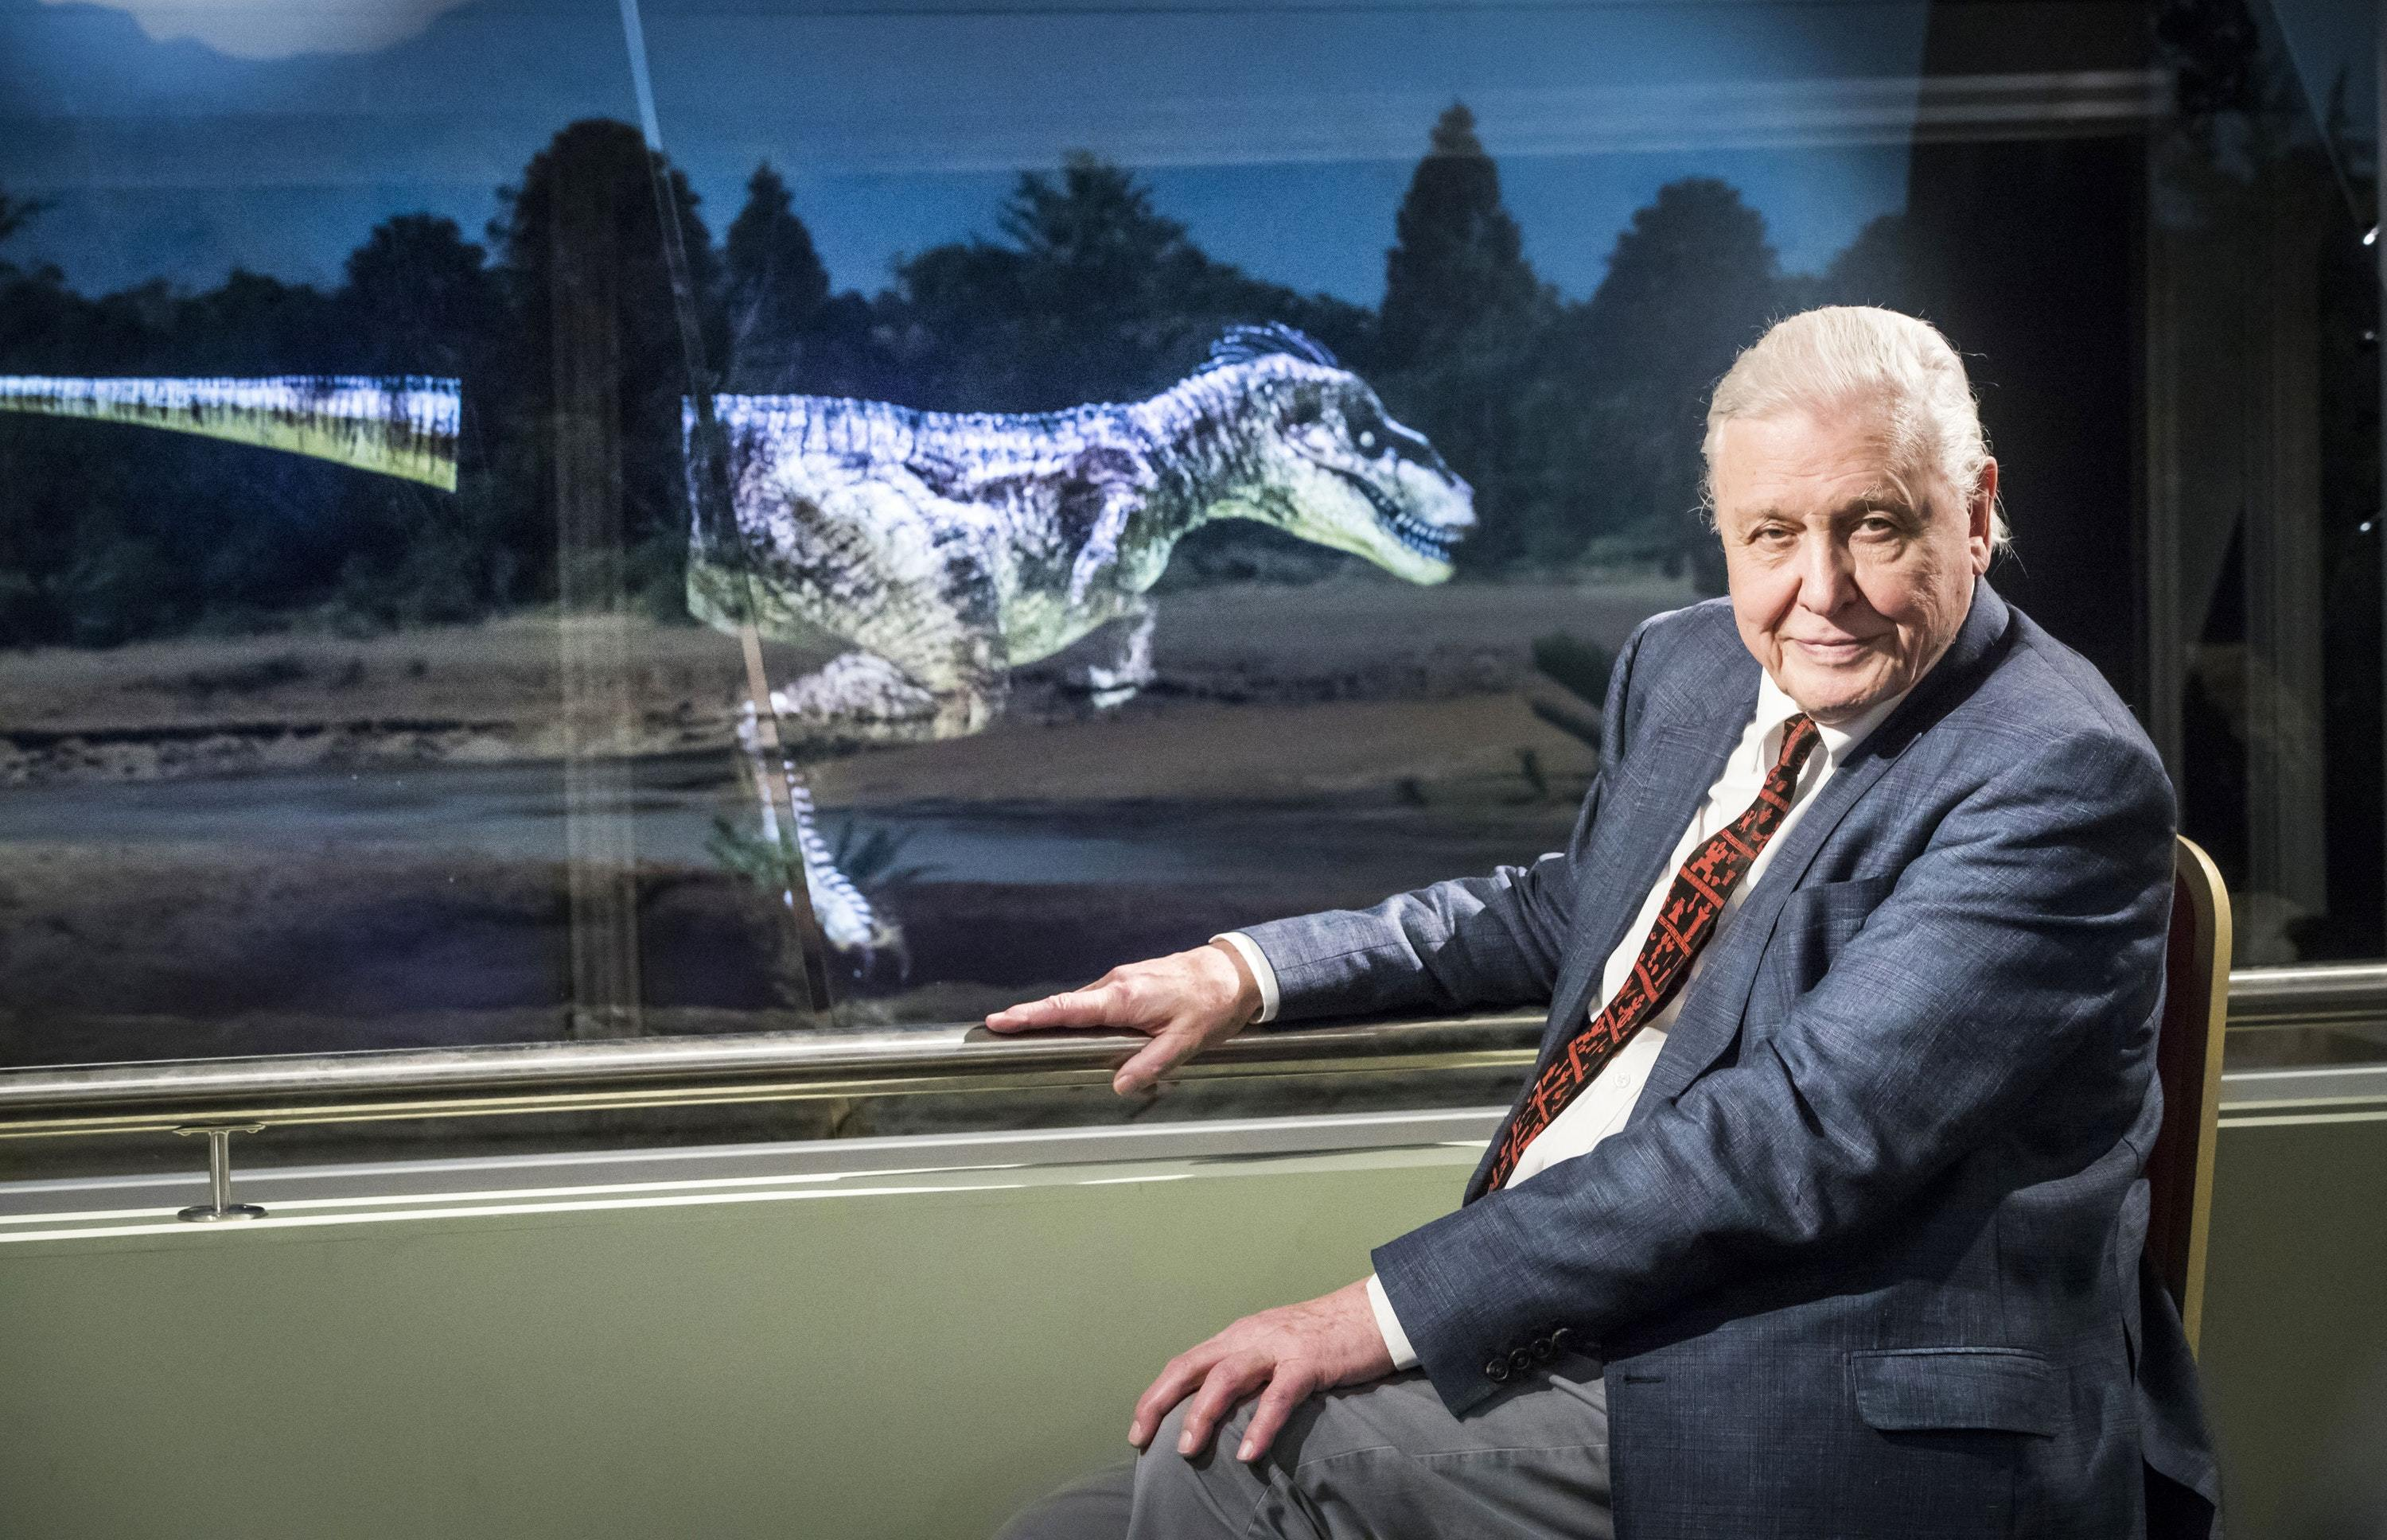 Sir David Attenborough as he officially opens Yorkshire's Jurassic World at the Yorkshire Museum in York (Danny Lawson/PA)